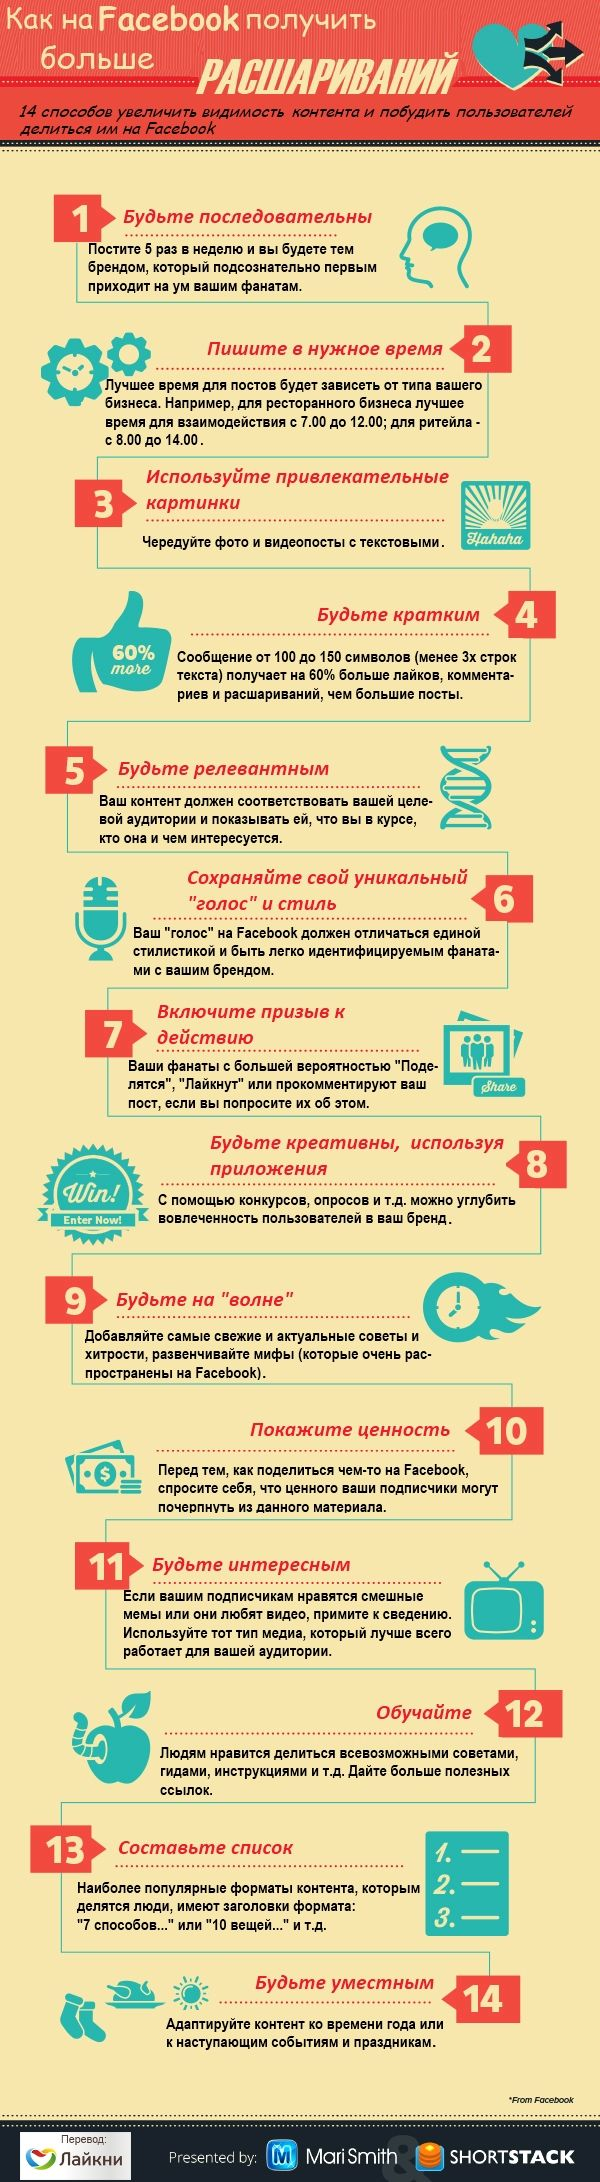 14 tips on how to increase the visibility of content on #Facebook and encourage to share your content #infographics Инфографика: Как получить больше расшариваний на Facebook